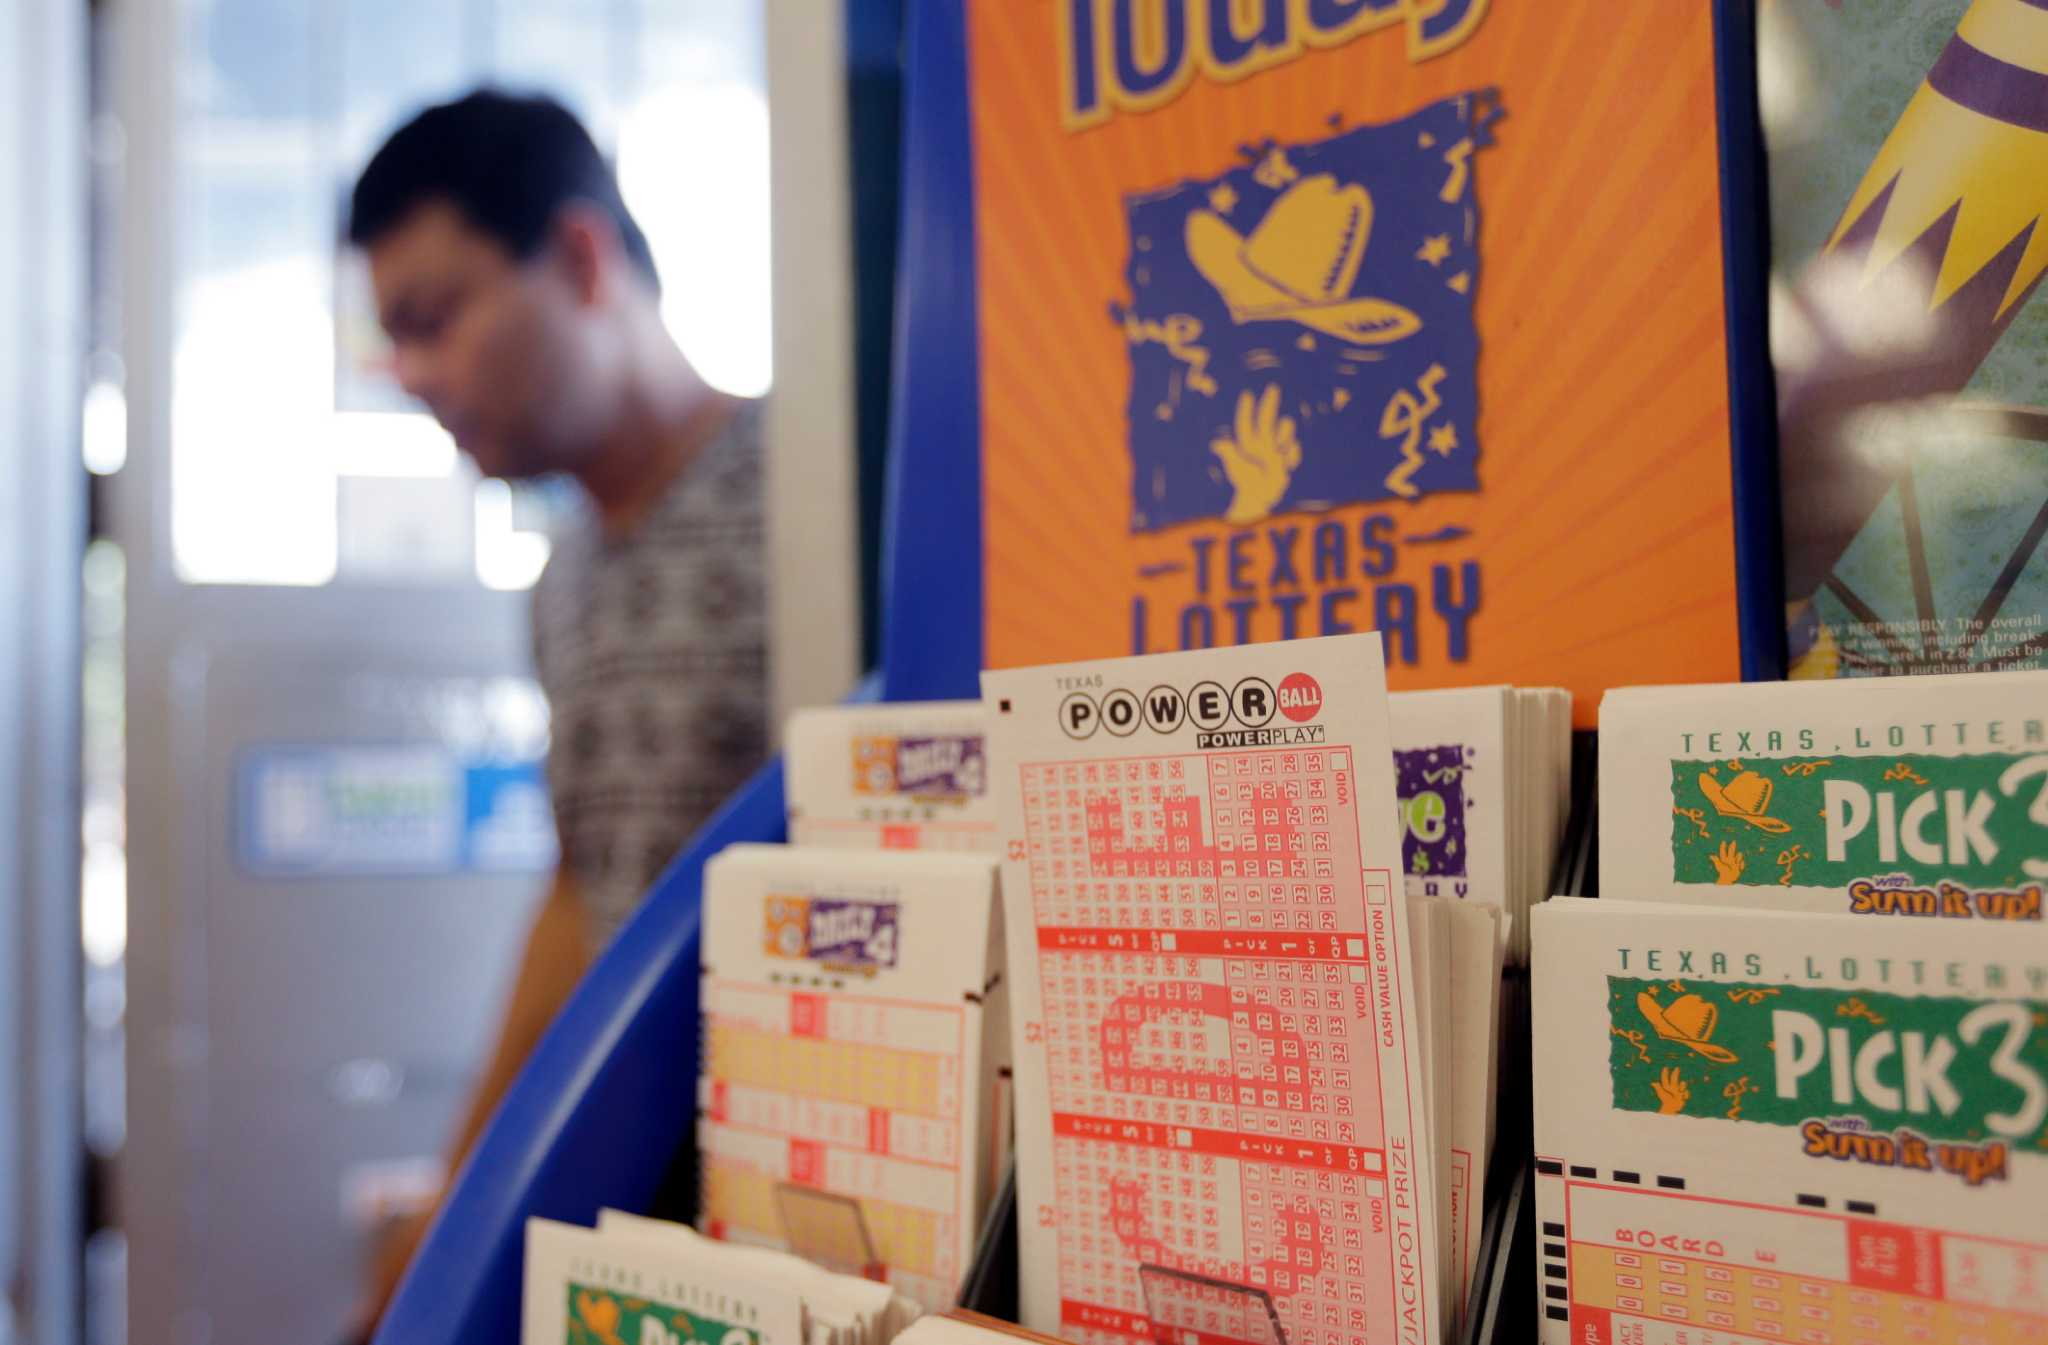 Texas lottery watchdog explains how the Powerball could be a